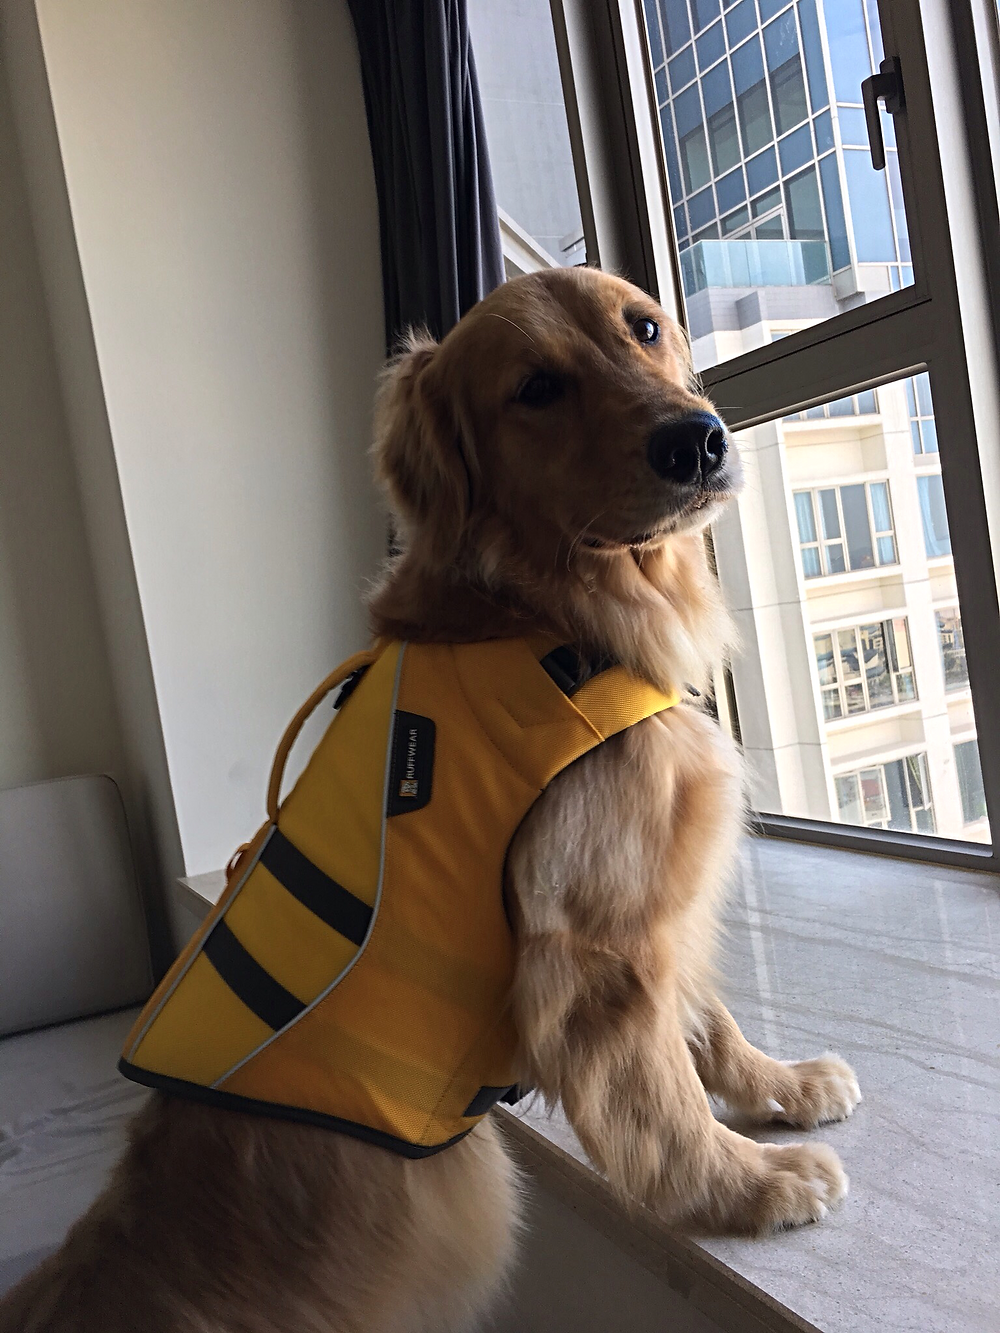 A very annoyed dog wearing a lifejacket for the first time